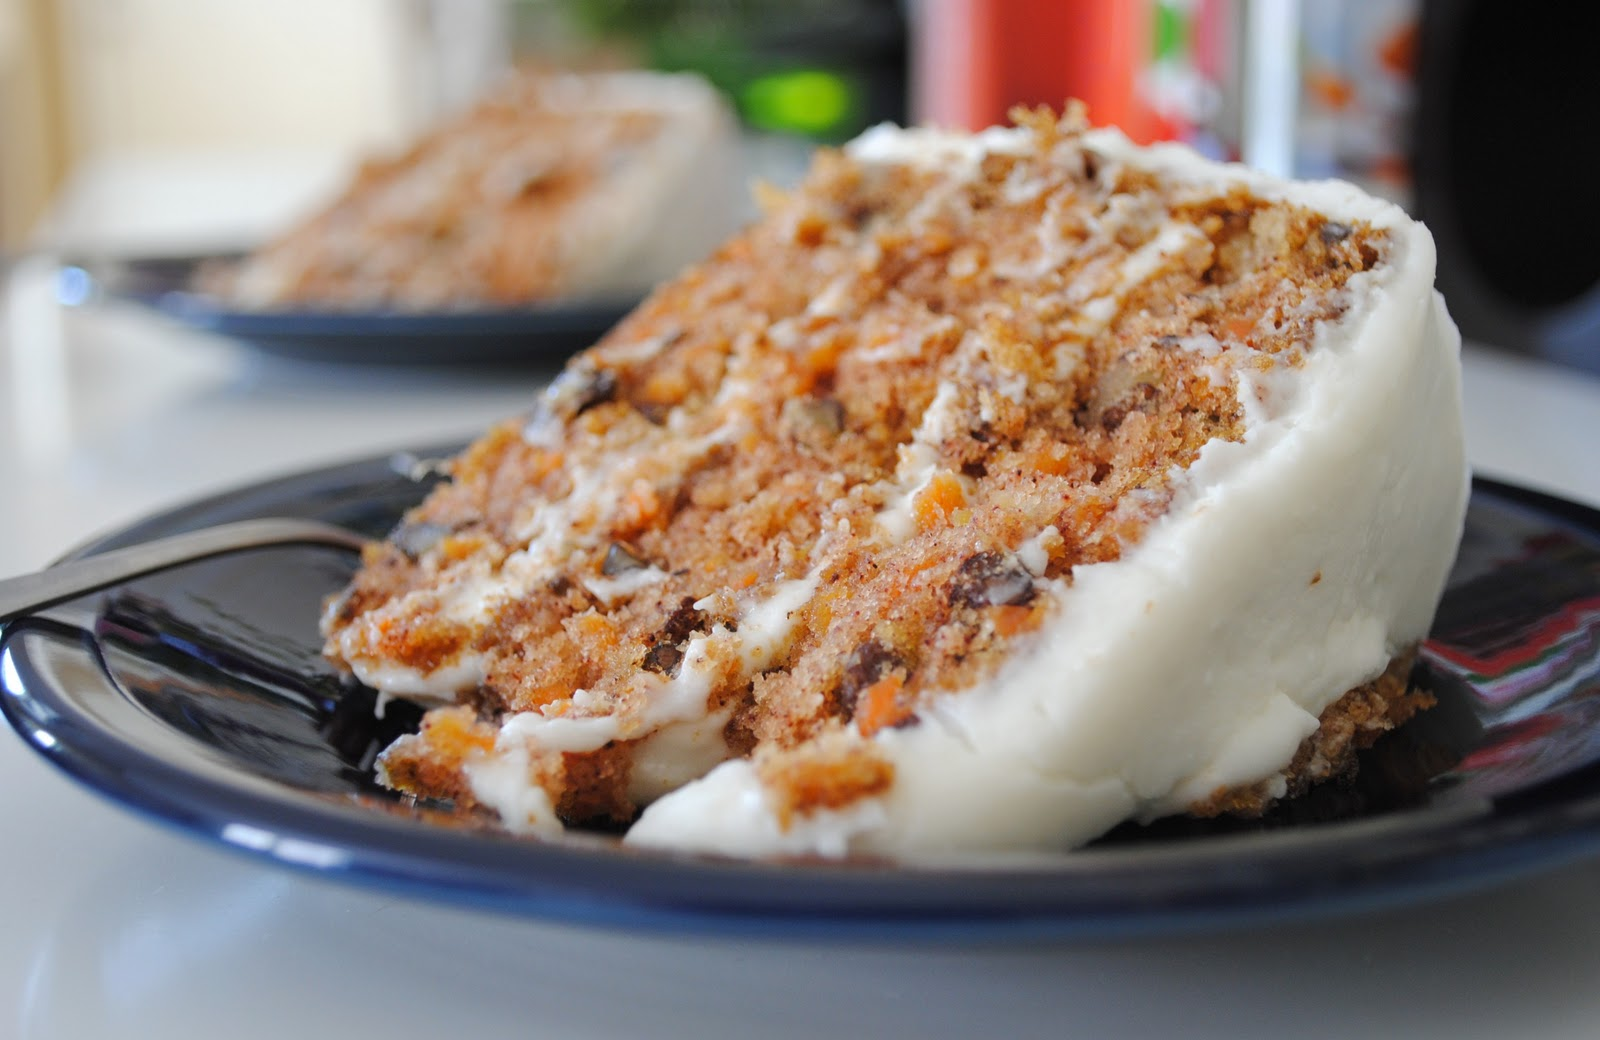 Triple Layer Carrot Cake with Cream Cheese Frosting Recipe